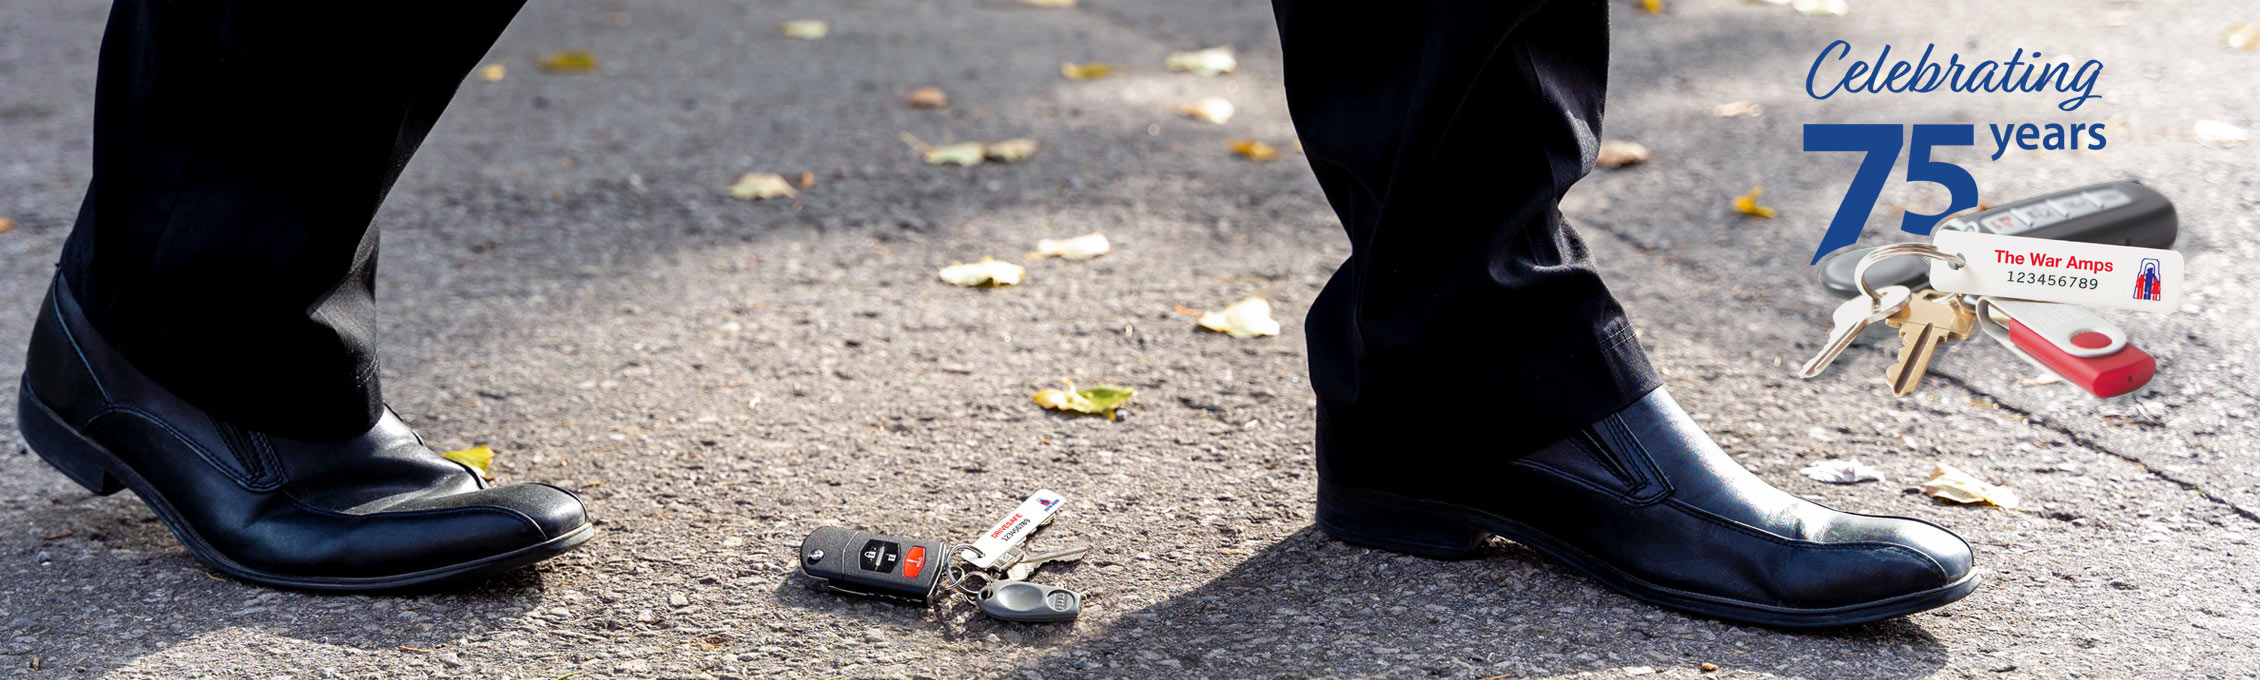 A set of keys with a War Amps key tag attached laying on the ground. Learn more about the Key Tag Service.